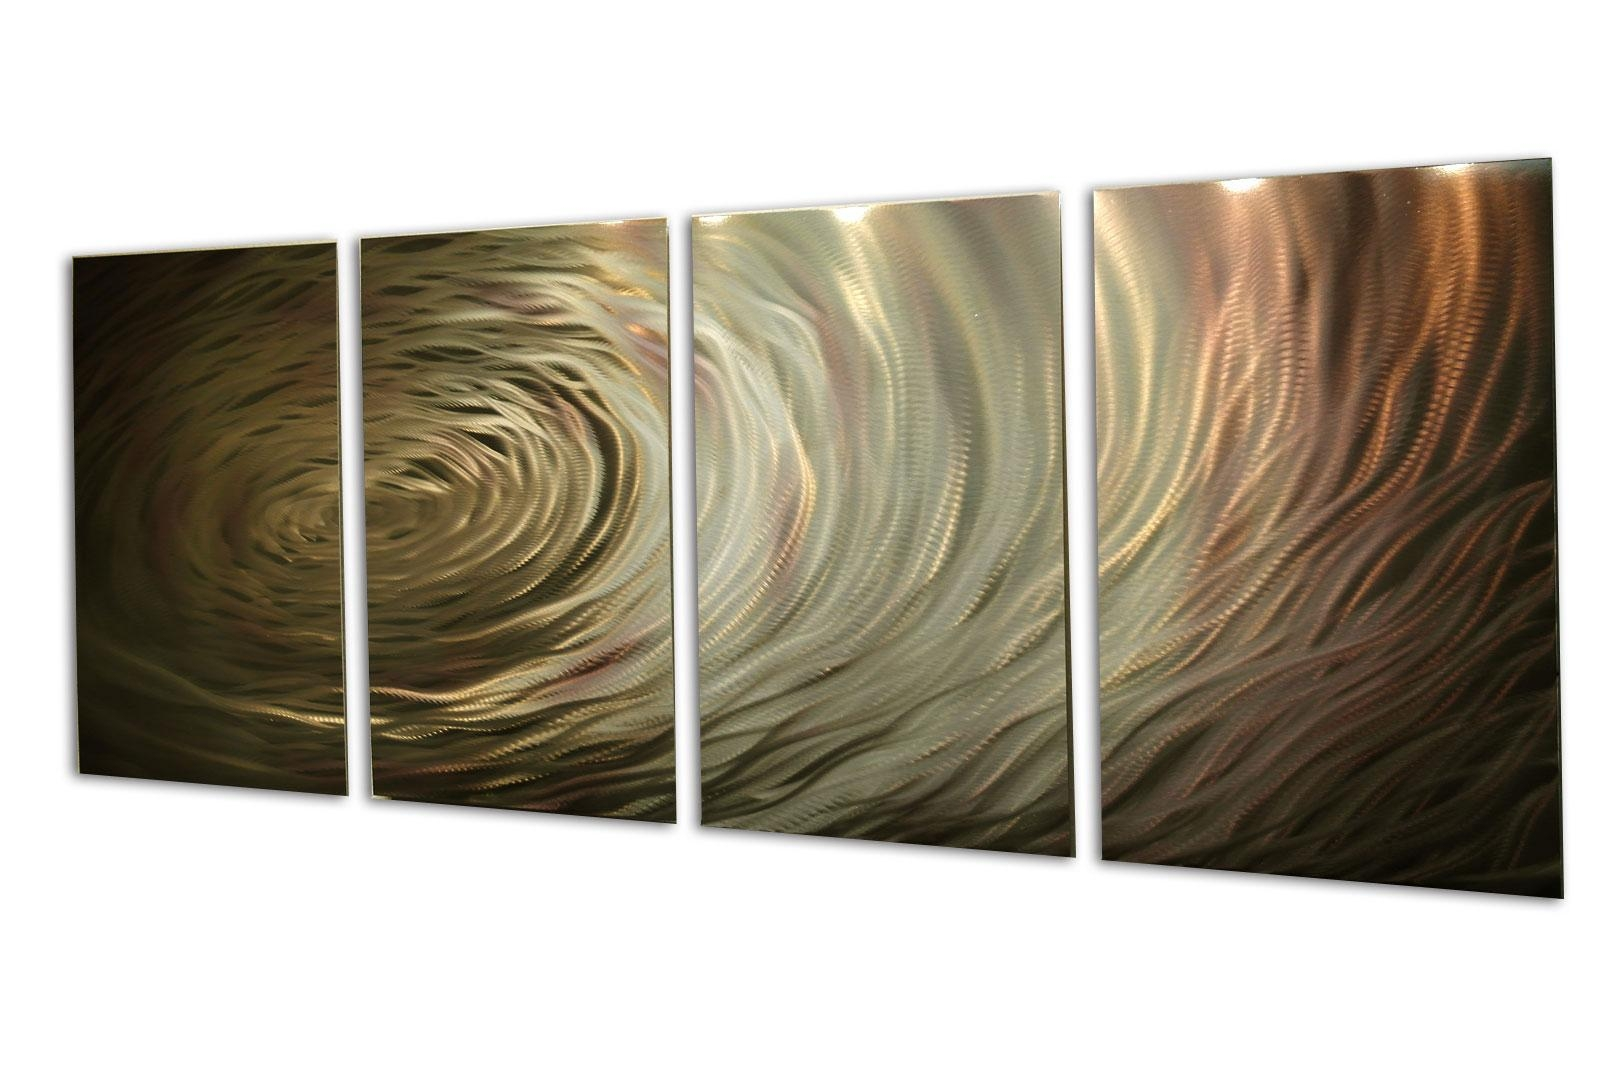 Ripple Brown Gold Metal Wall Art Abstract Sculpture Modern Decor With Metal Abstract Wall Art (View 18 of 20)